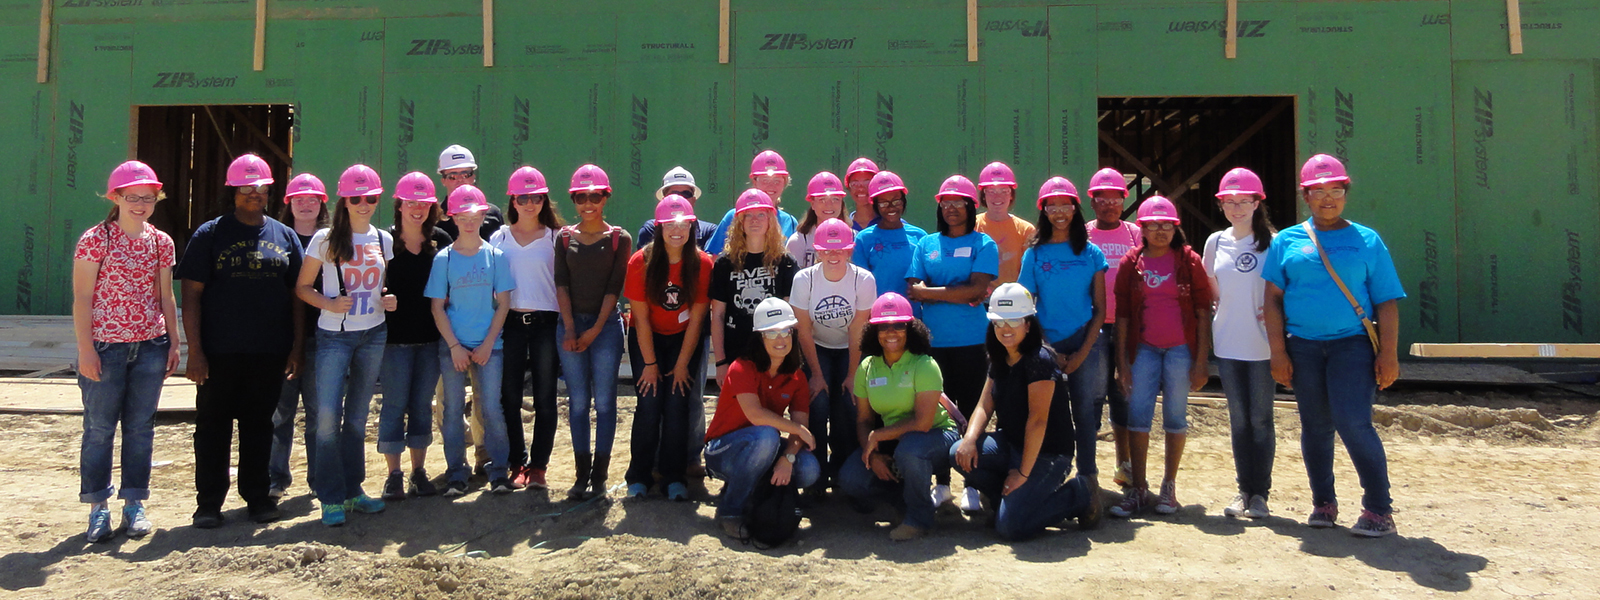 Durham School Pink Hardhat Program - Students lining up for a photo